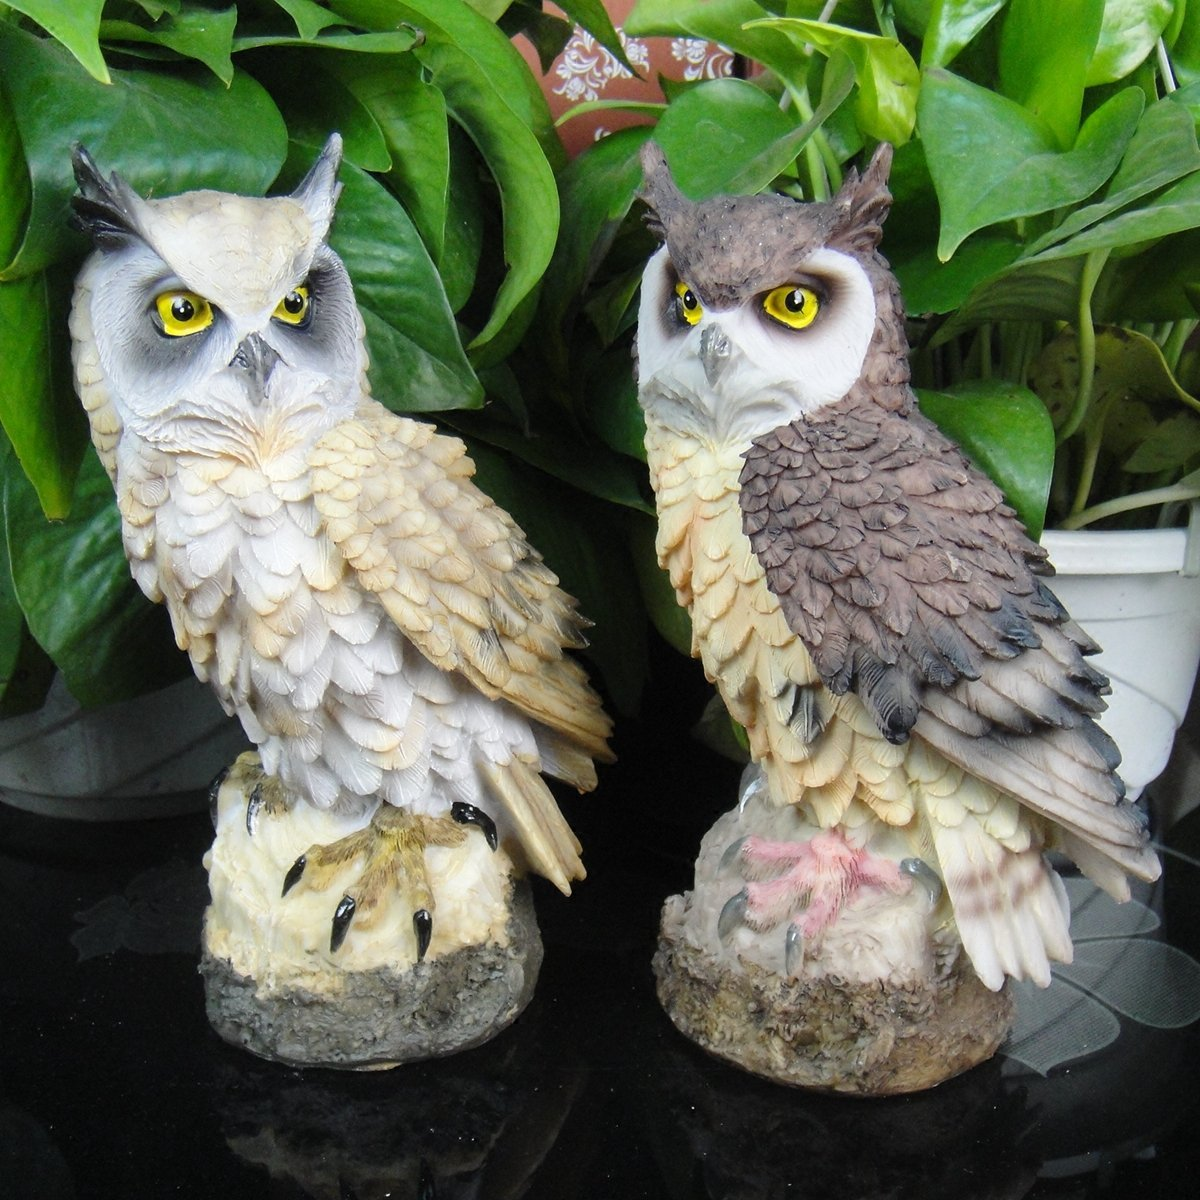 chenyu Garden Statue Figures Large Owl Resin Patio Lawn Yard Indoor Outdoor Decorations, 7.1'' Gift